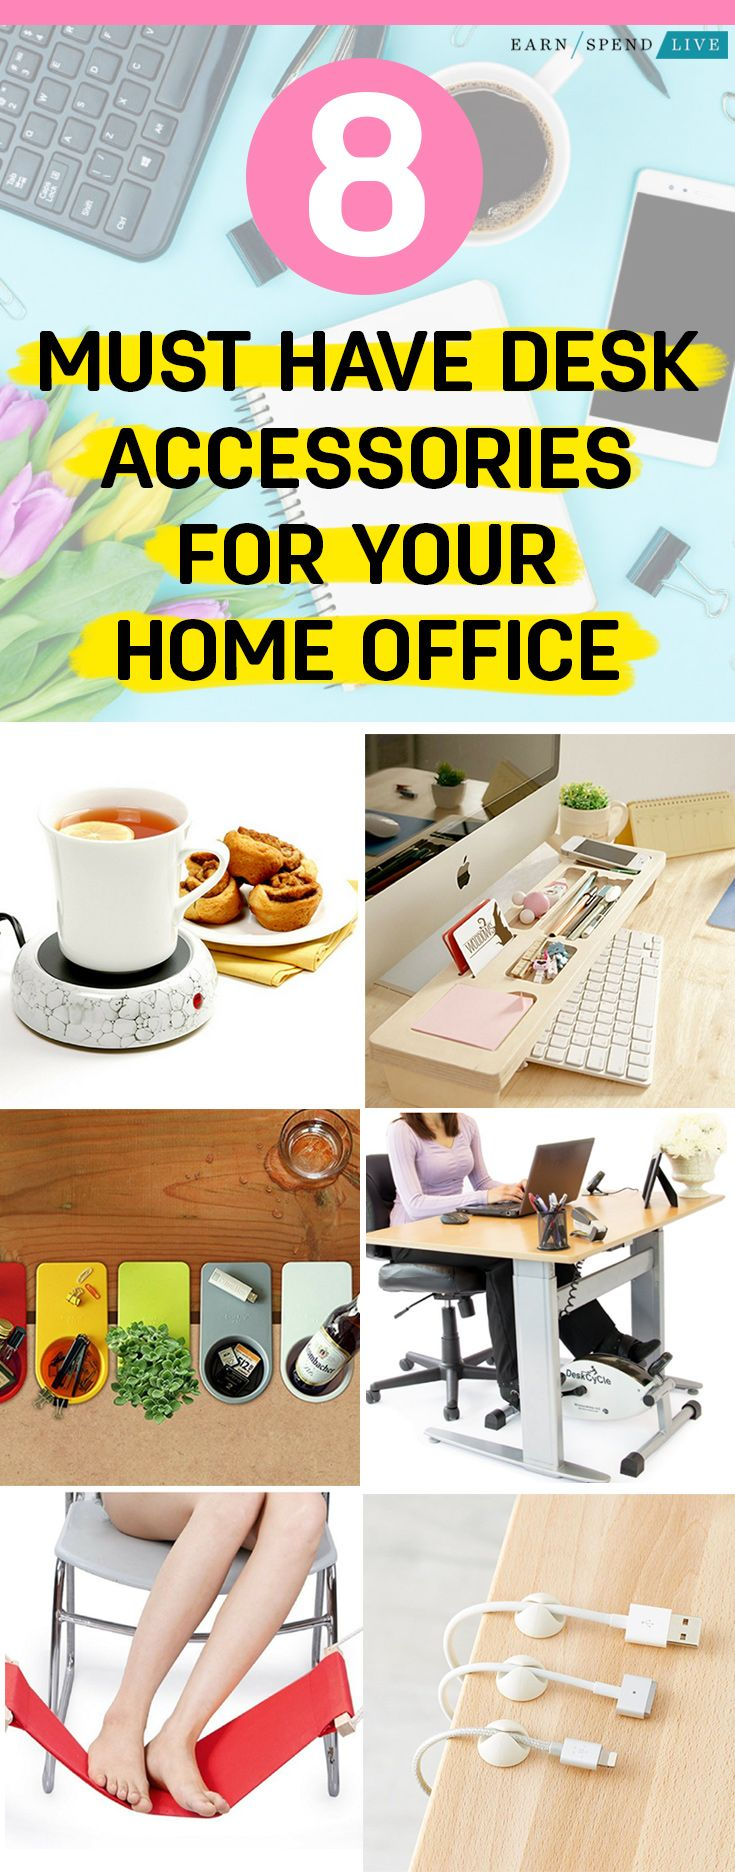 Must Have Desk Accessories For Your Home Office With Images